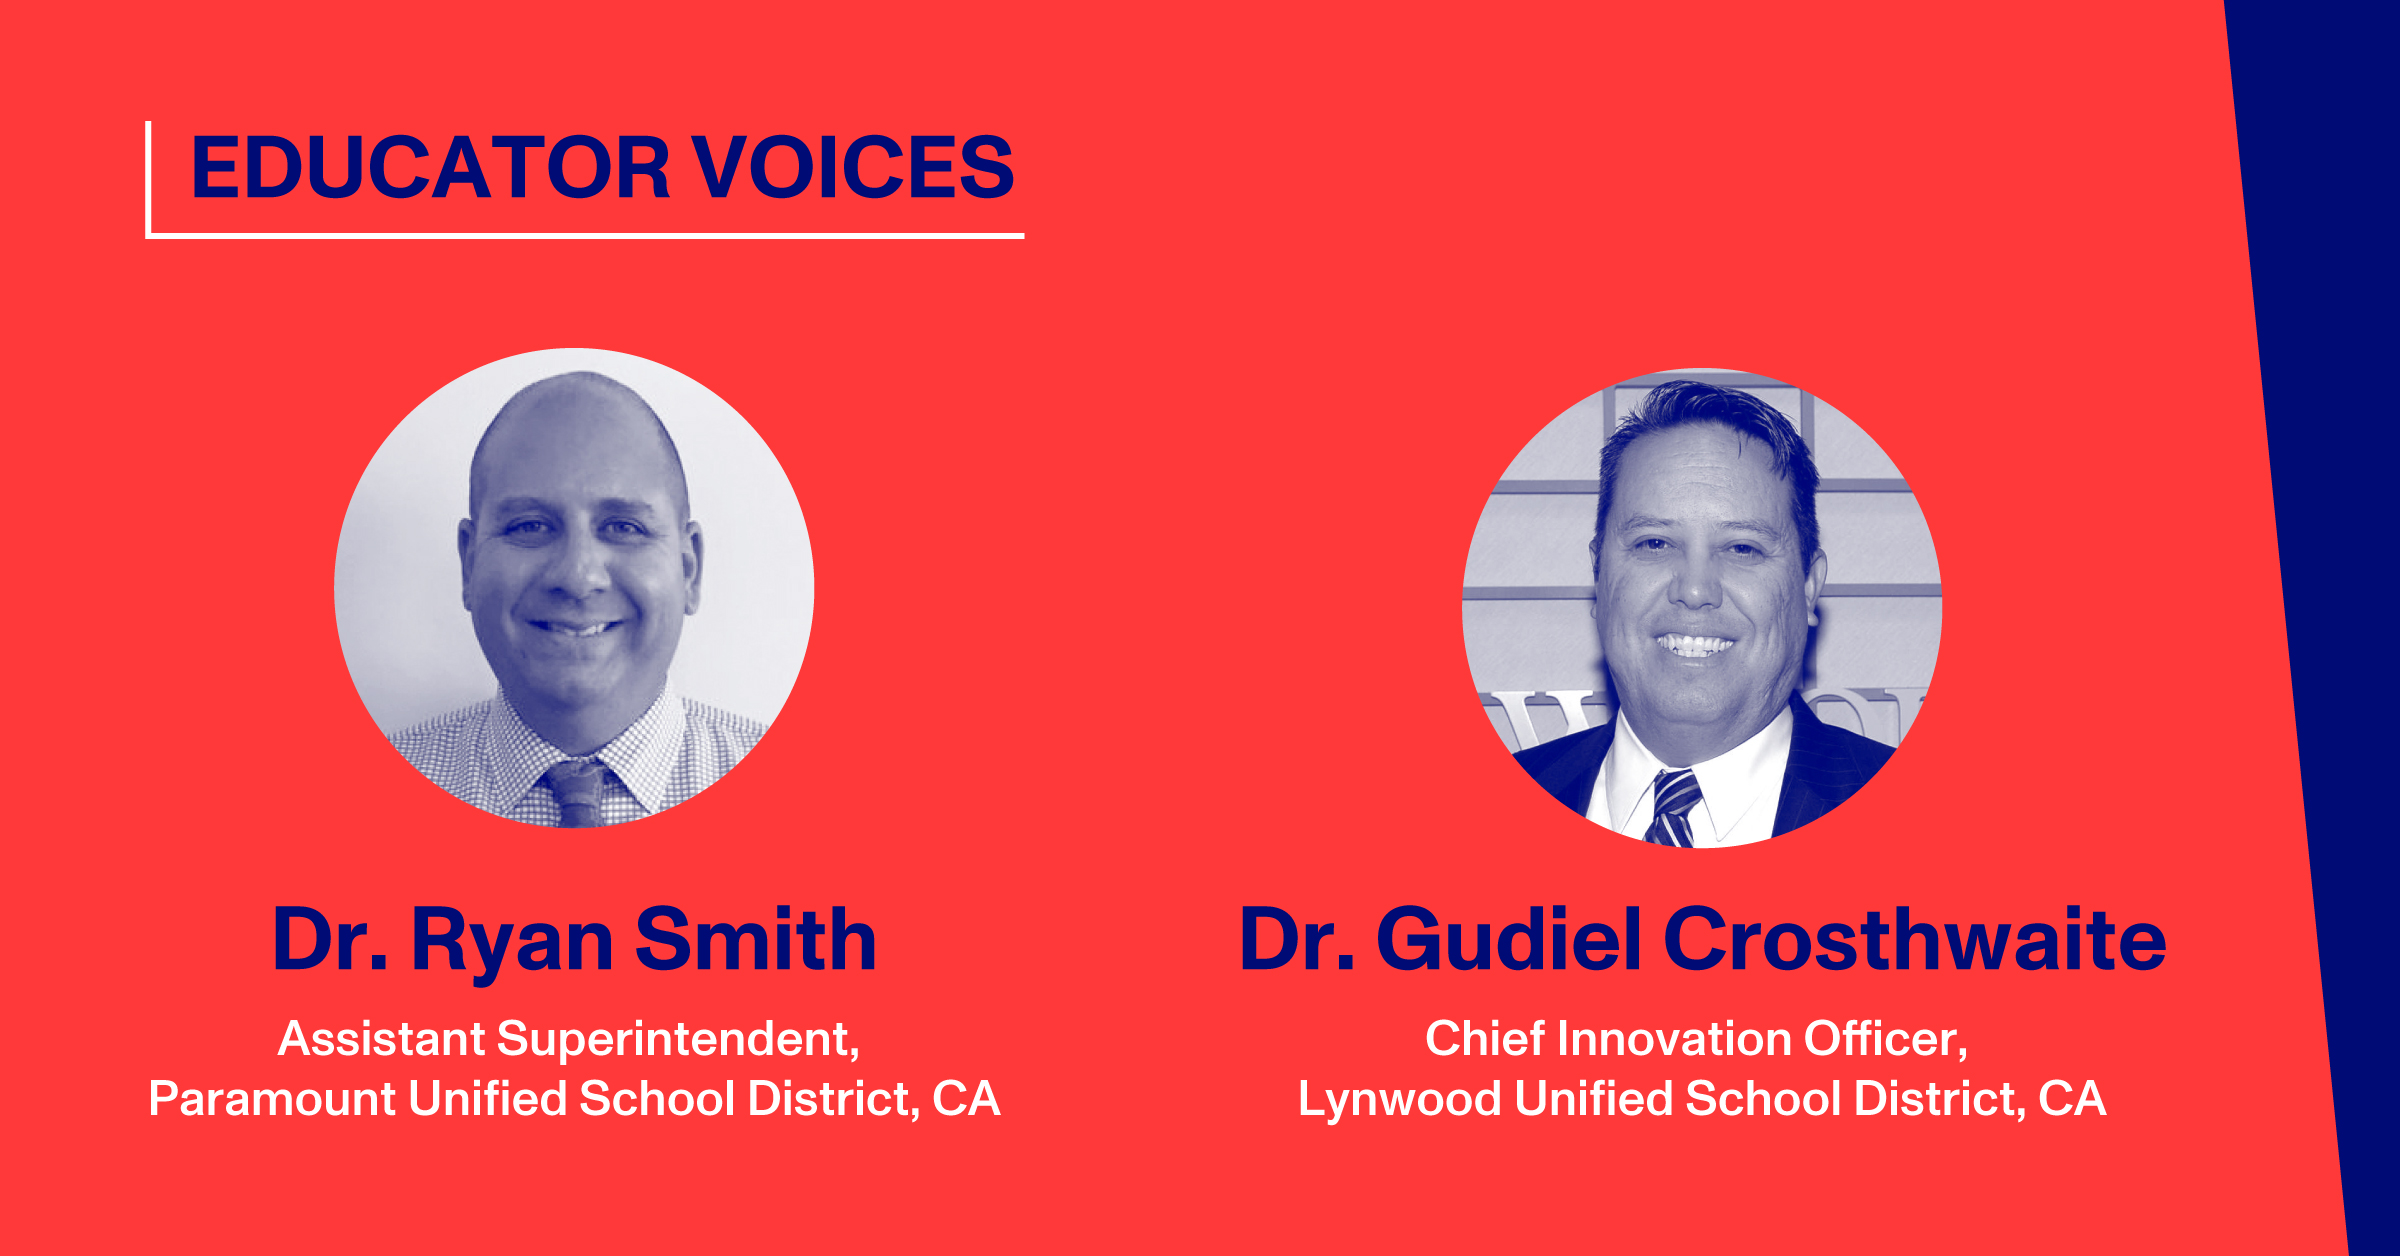 Dr. Ryan Smith, Assistant Superintendent, Paramount Unified School District, CA; Dr. Gudiel Crosthwaithe, Chief Innovation Officer, Lynwood Unified School District, CA